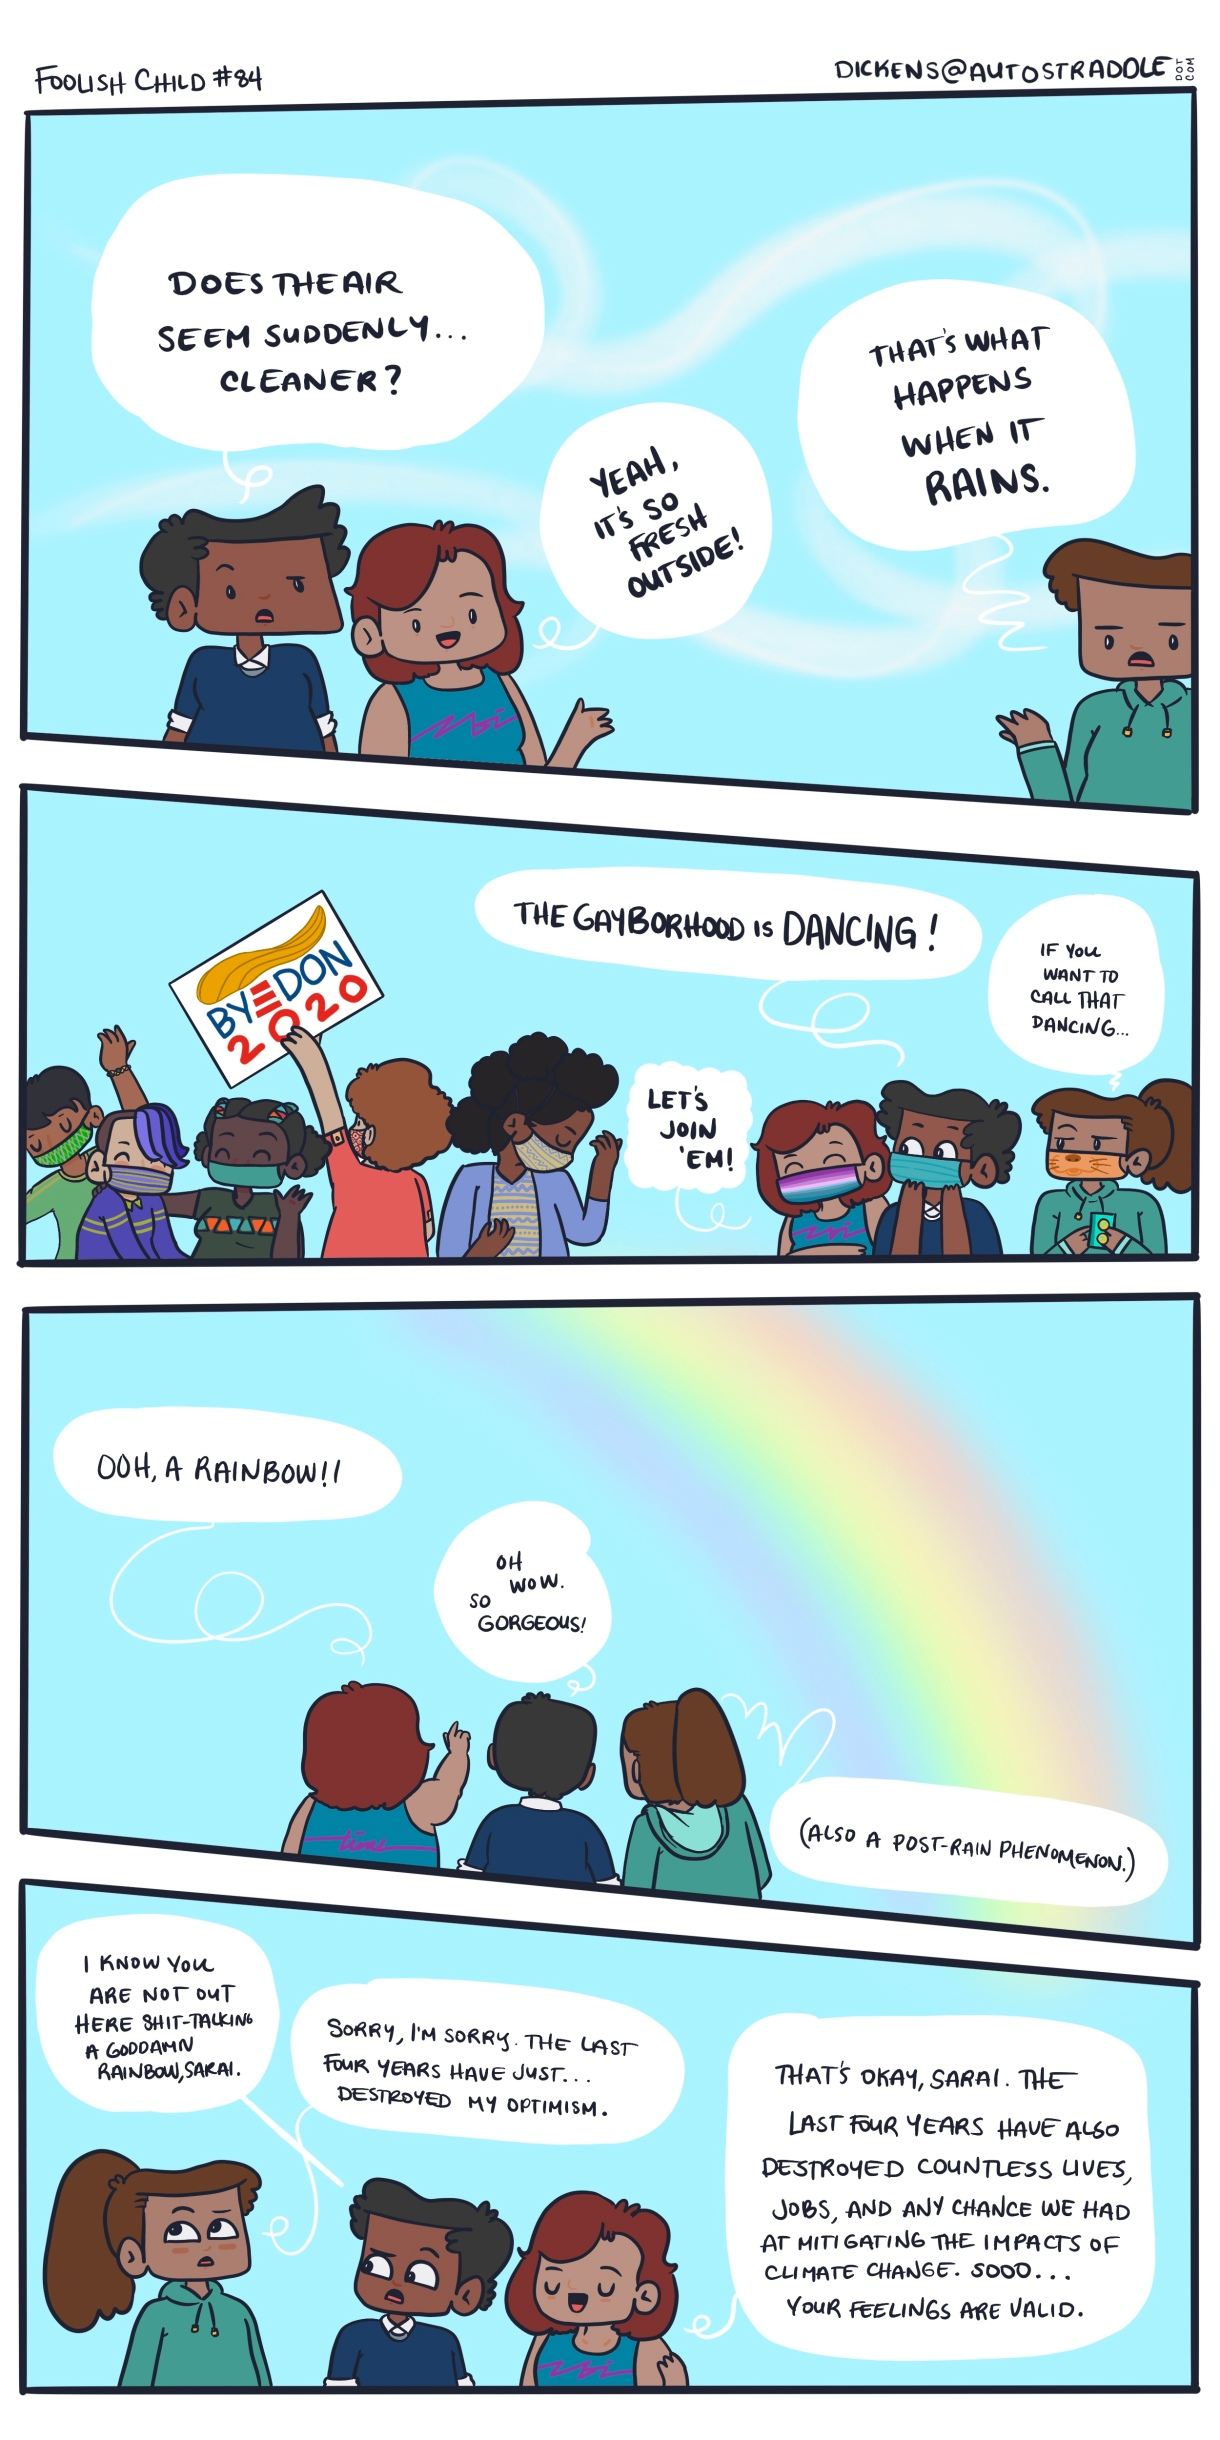 "A hand drawn 4-panel comic of a bright blue sky, with queer people dancing in the street. One has a sign that says ""Bye Don 202!"" One of Dickens' friends suggests that the group join the dancers. Dickens says, ""If you can call that dancing."" There's a rainbow above, which Dickens says could be a coincidence. Dickens worries that the last 4 years may have destroyed their optimism — But their friends tell them that it's ok, the last four years have also destroyed countless lives, jobs, and literally any chance of combating climate change."